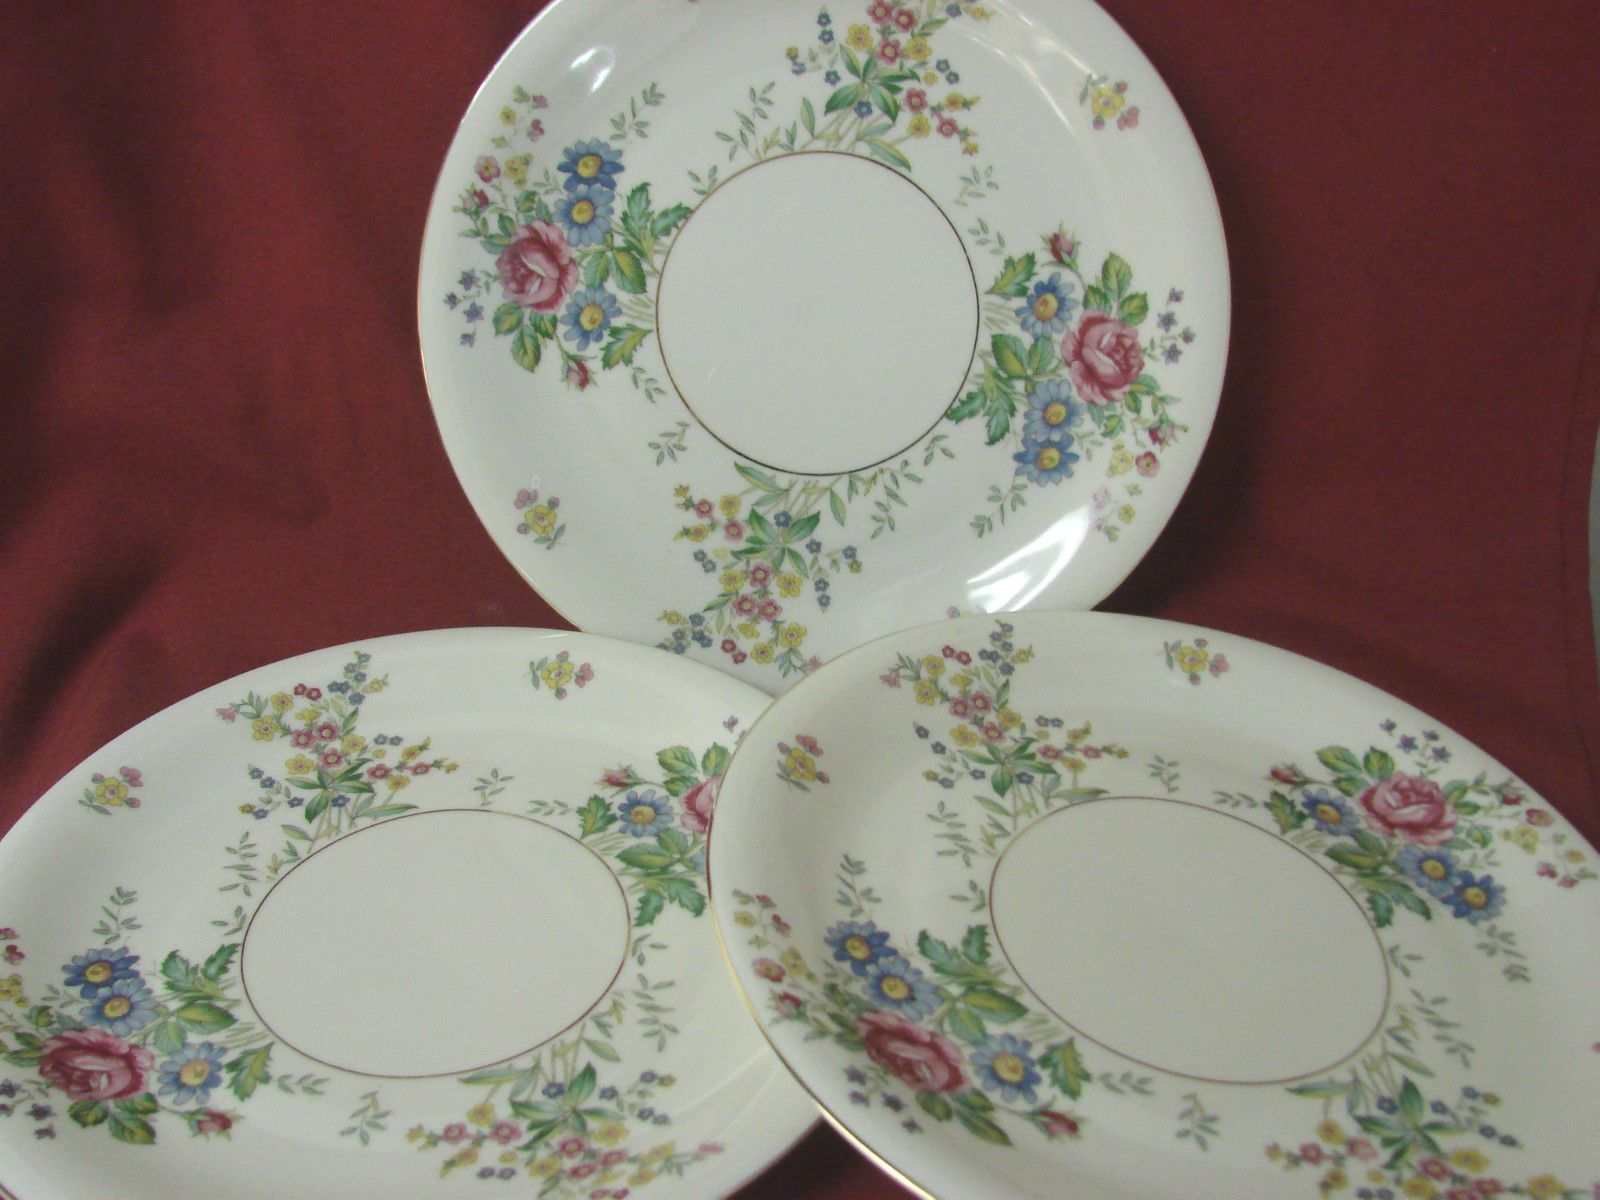 1 New Plate Cup /&Saucer Stand for china /& dinnerware